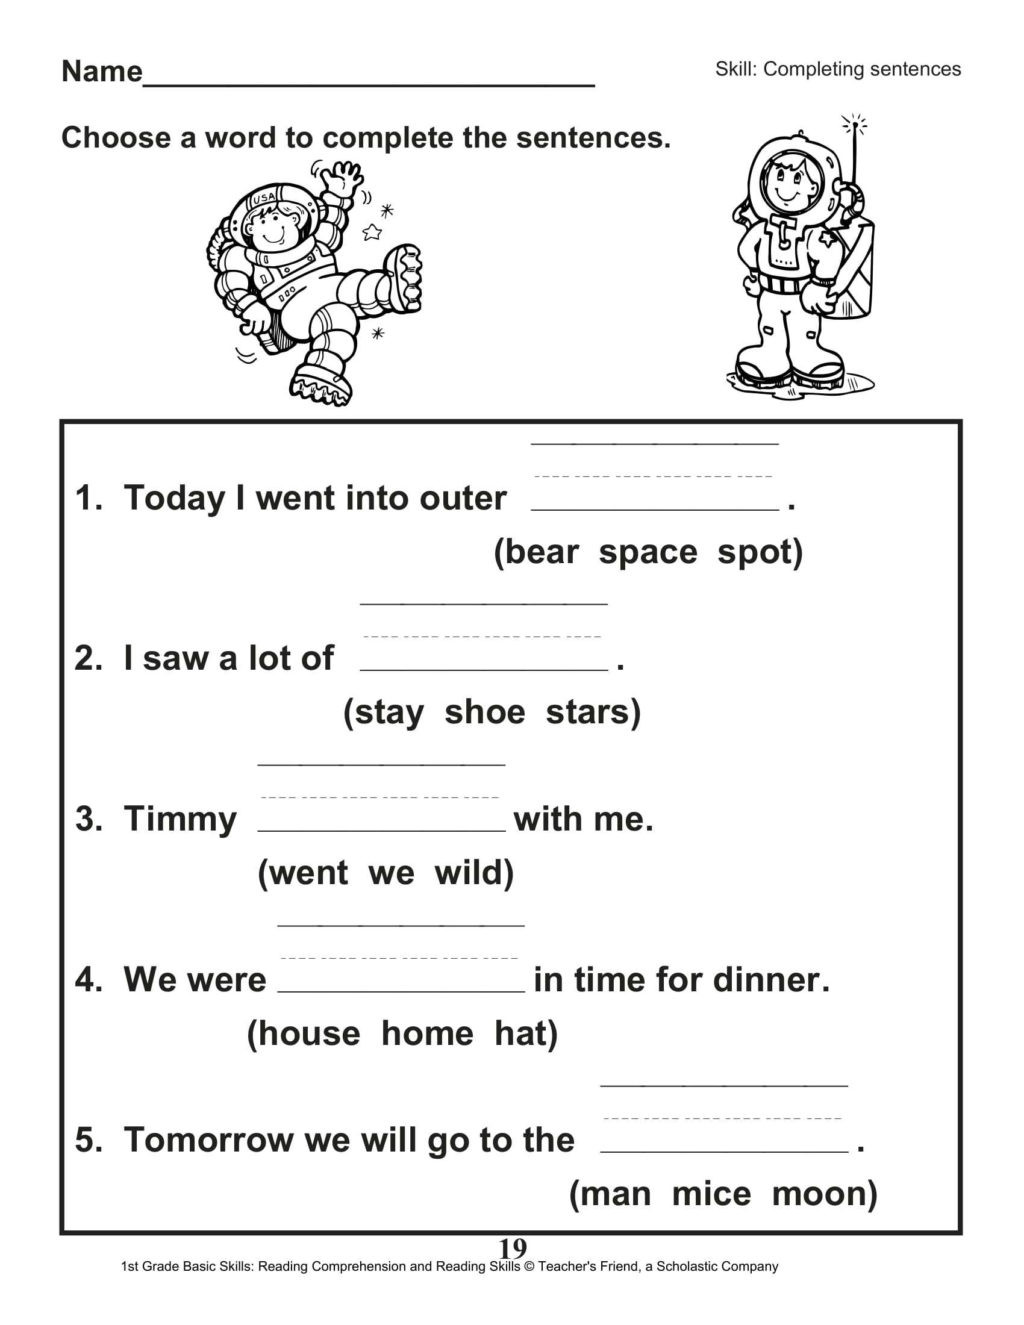 Complete Sentences Worksheets 1st Grade Worksheet 1st Gradeeet Reading for Educations Free and